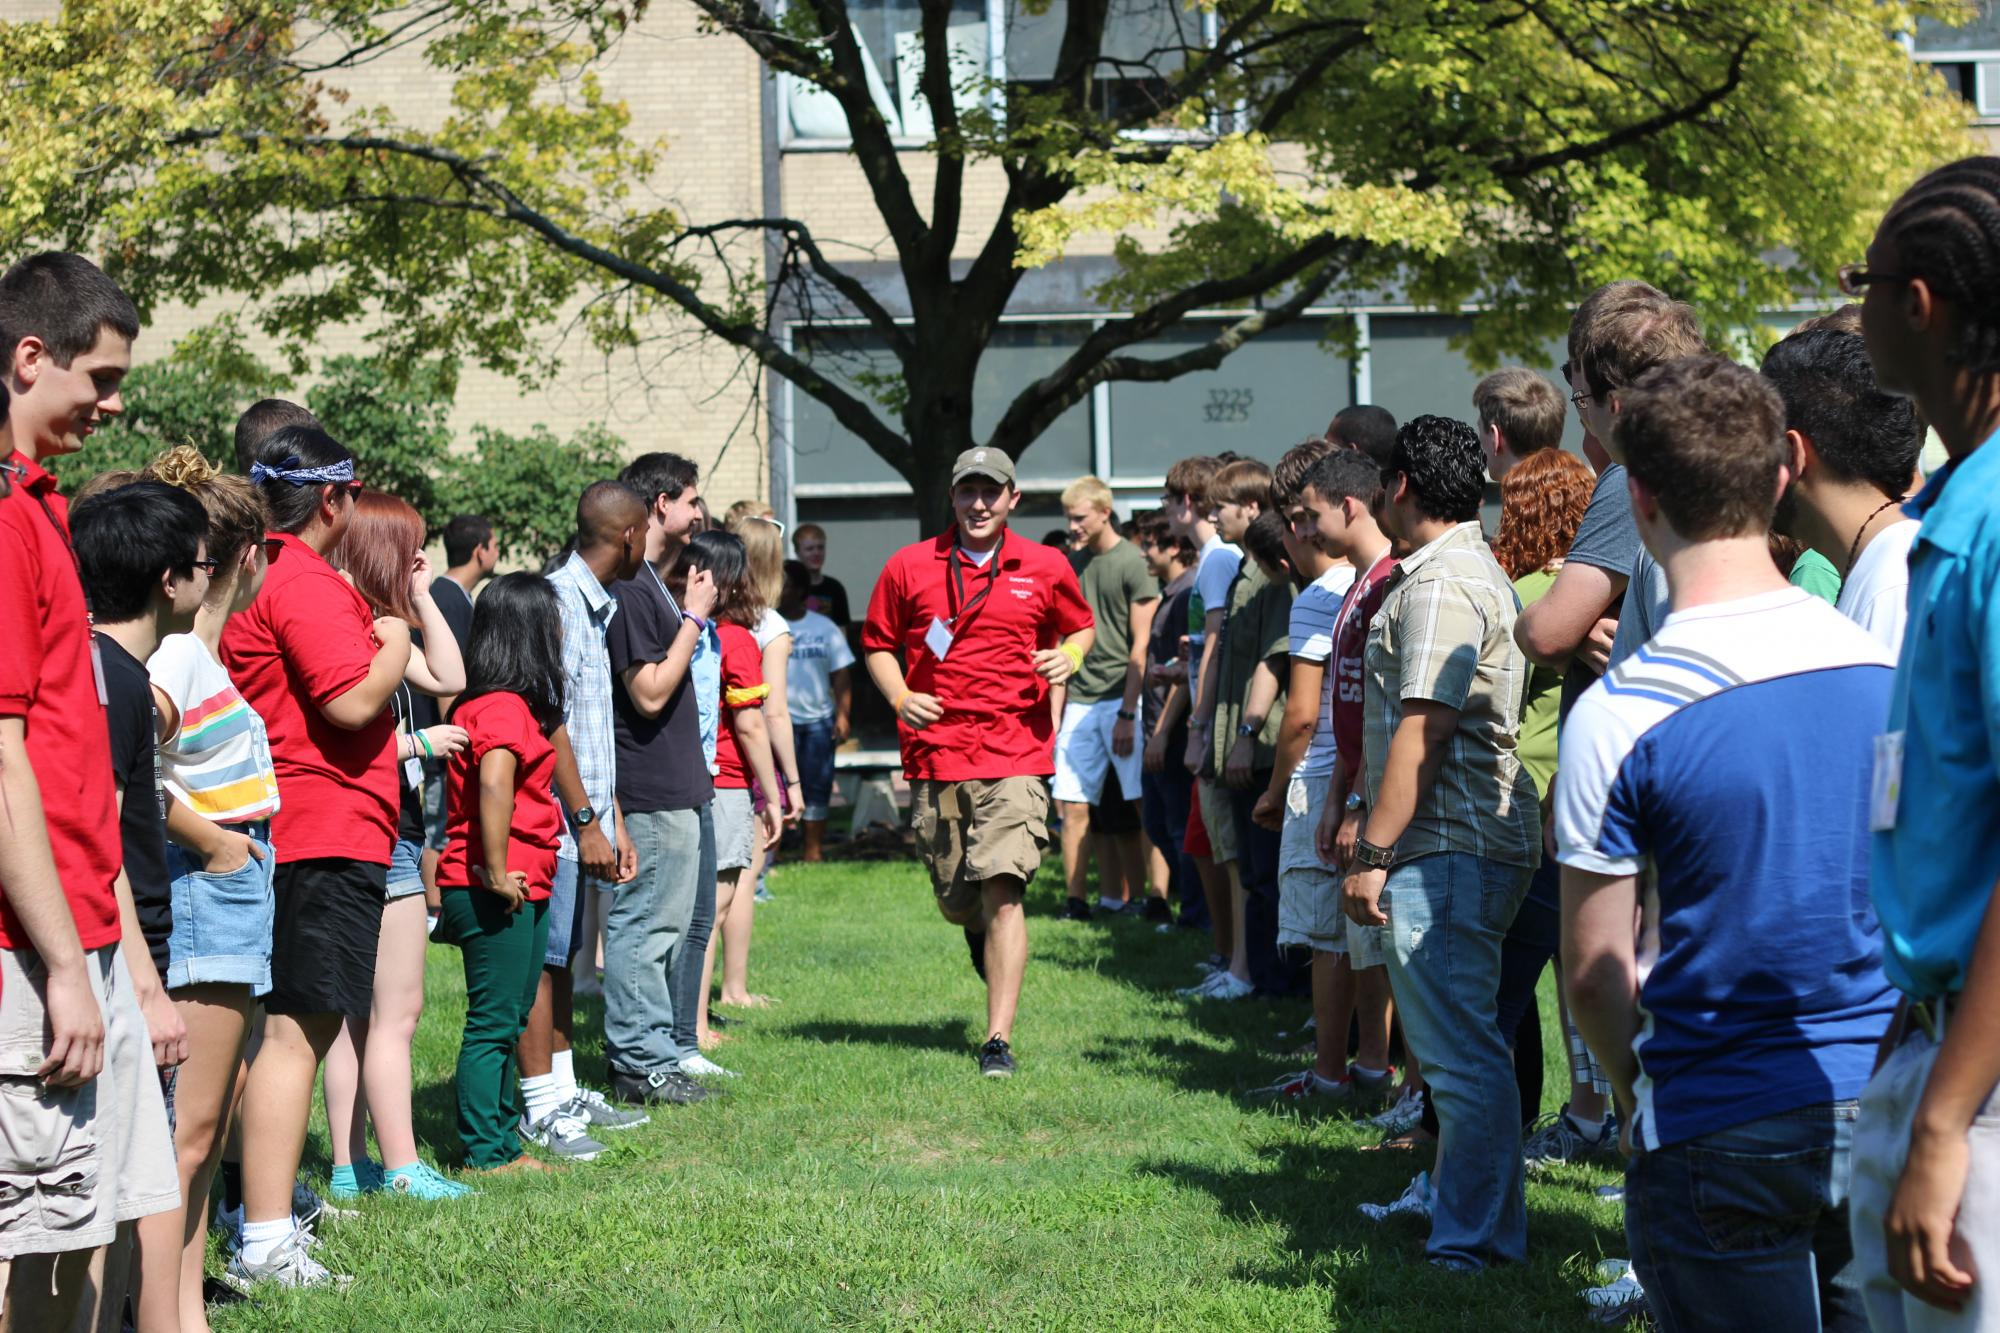 Residence and greek life residence and greek life illinois - The First Year Experience Program Fye At The Illinois Institute Of Technology Is Designed To Help Students Find The Resources And Support They Need To